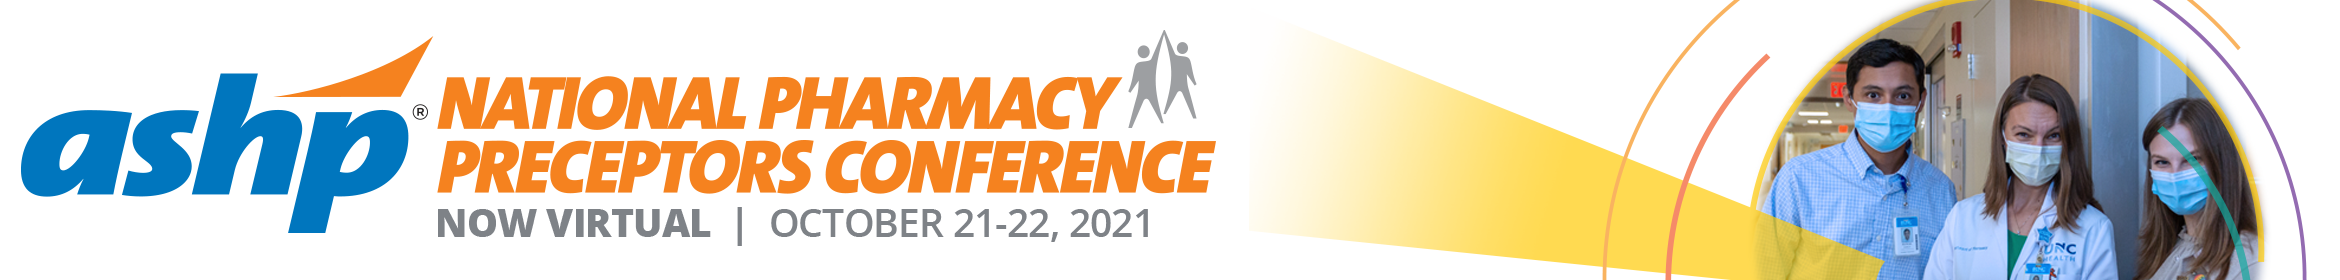 2021 National Pharmacy Preceptors Conference Main banner